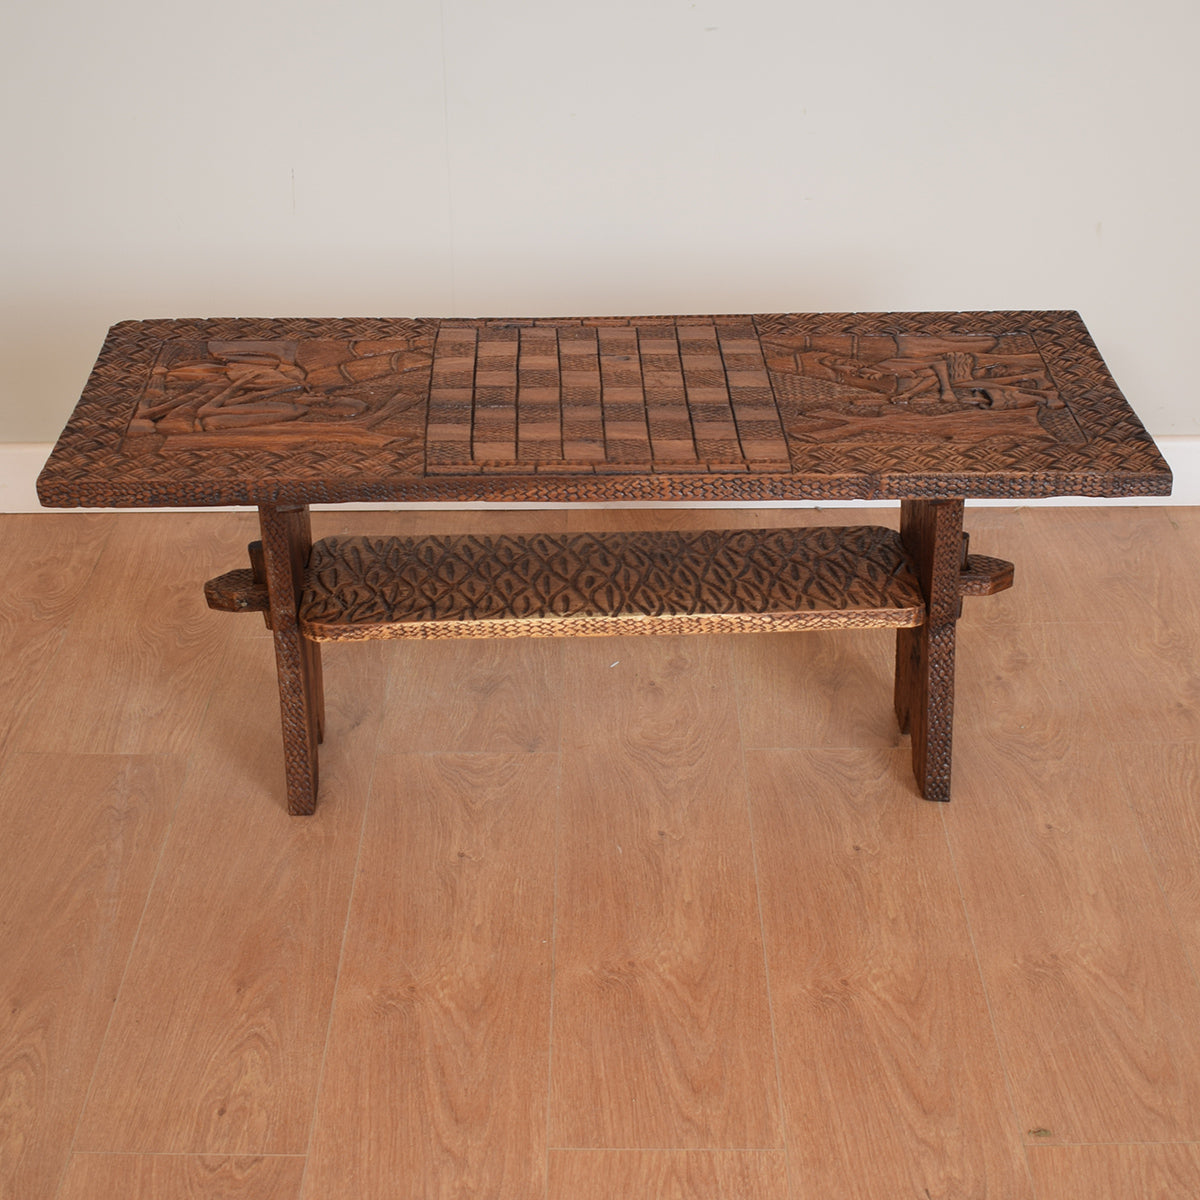 African Style Coffee Table With Chess Board